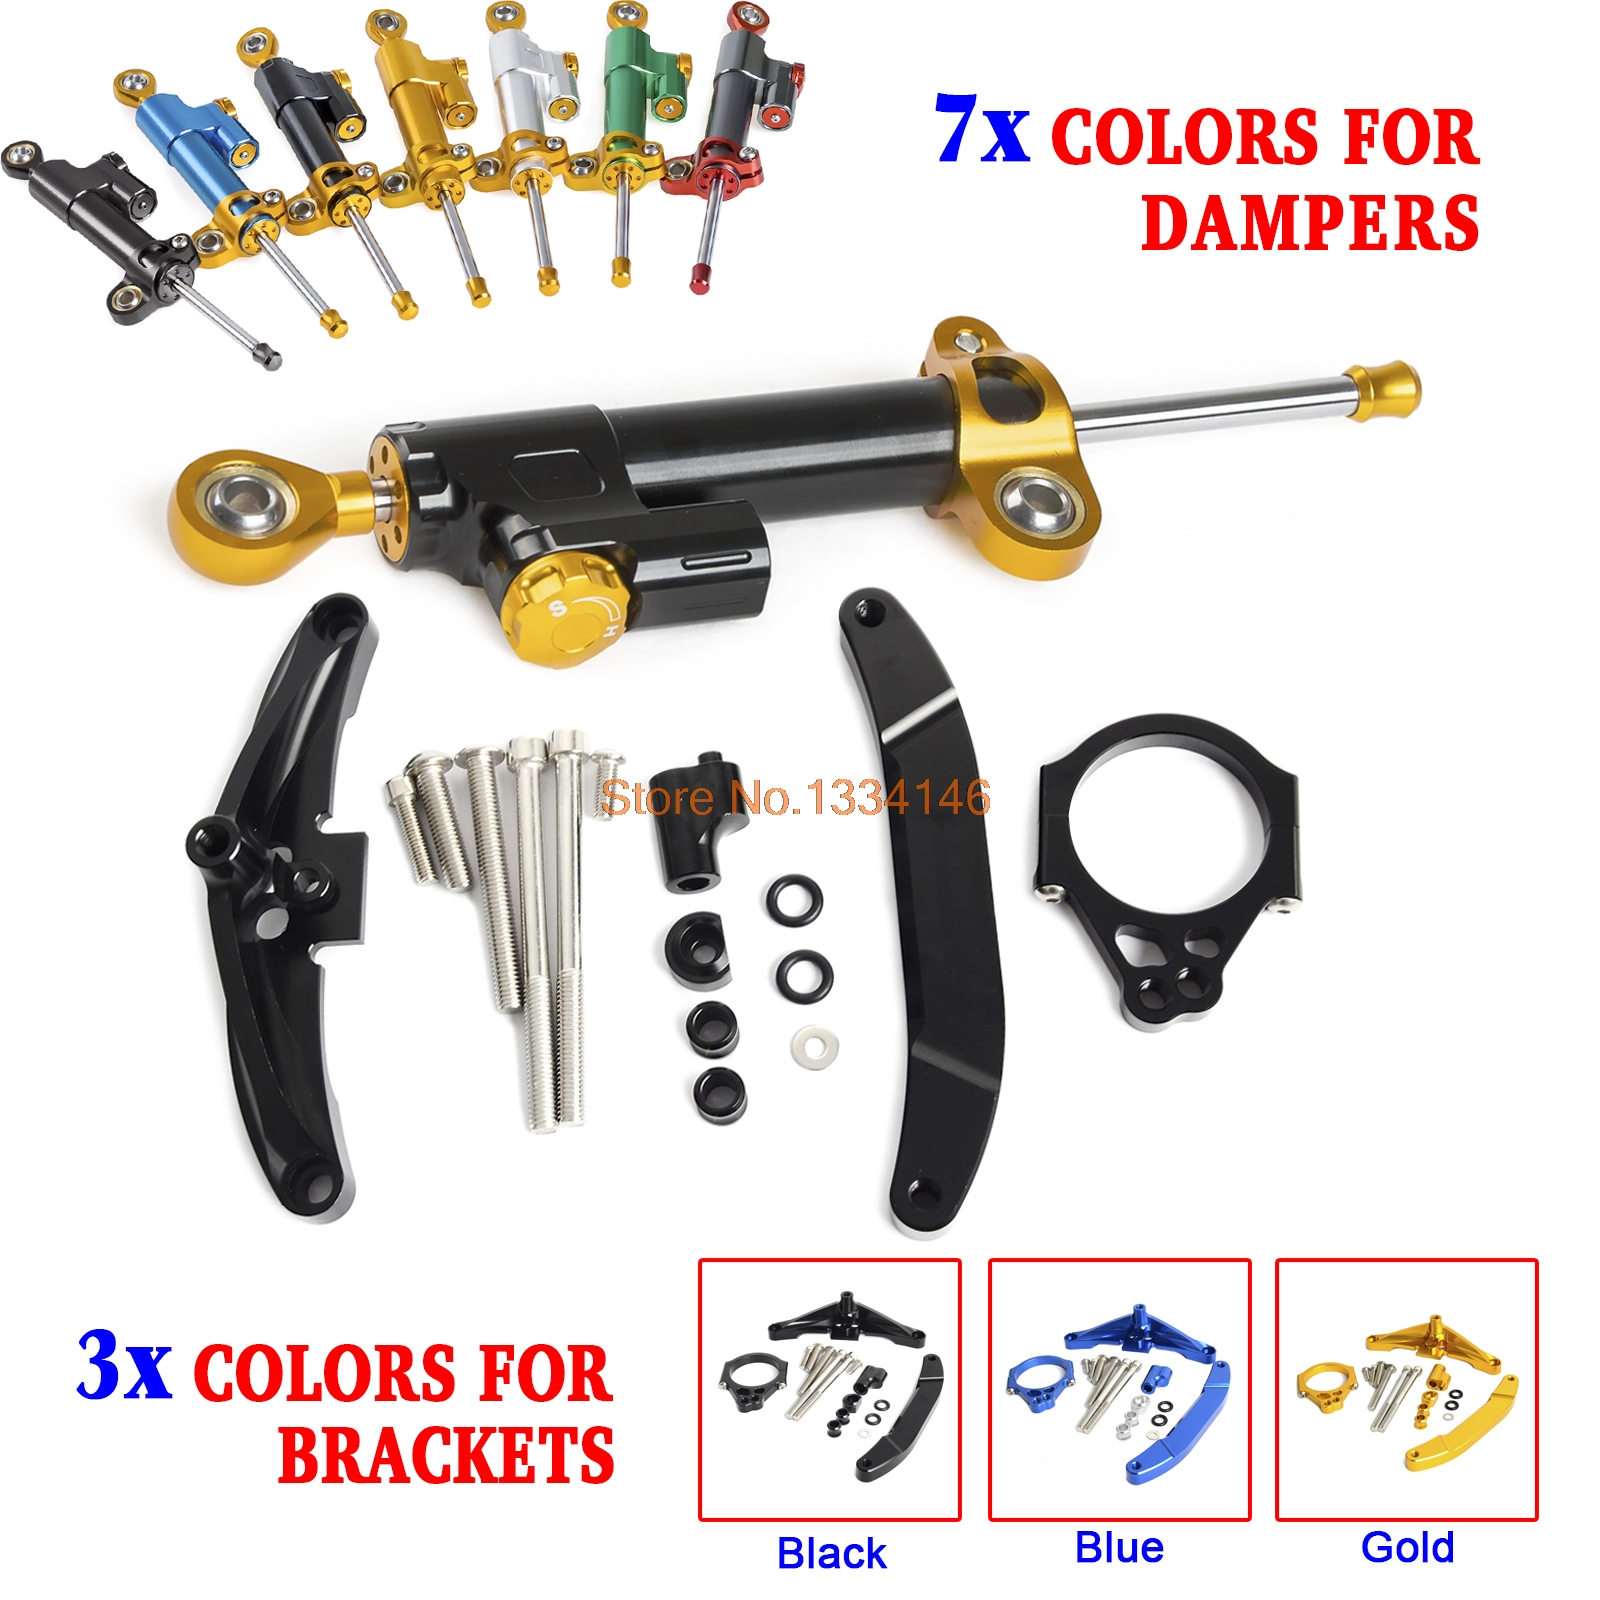 Motorcycle CNC Aluminium Steering Damper Stabilizer With Mounting Kits Bracket For Yamaha FZ1 FAZER 2006-2015 Black Blue Gold motorcycle cnc steering damper mounting bracket for yamaha fz1 fazer 2006 2007 2008 2015